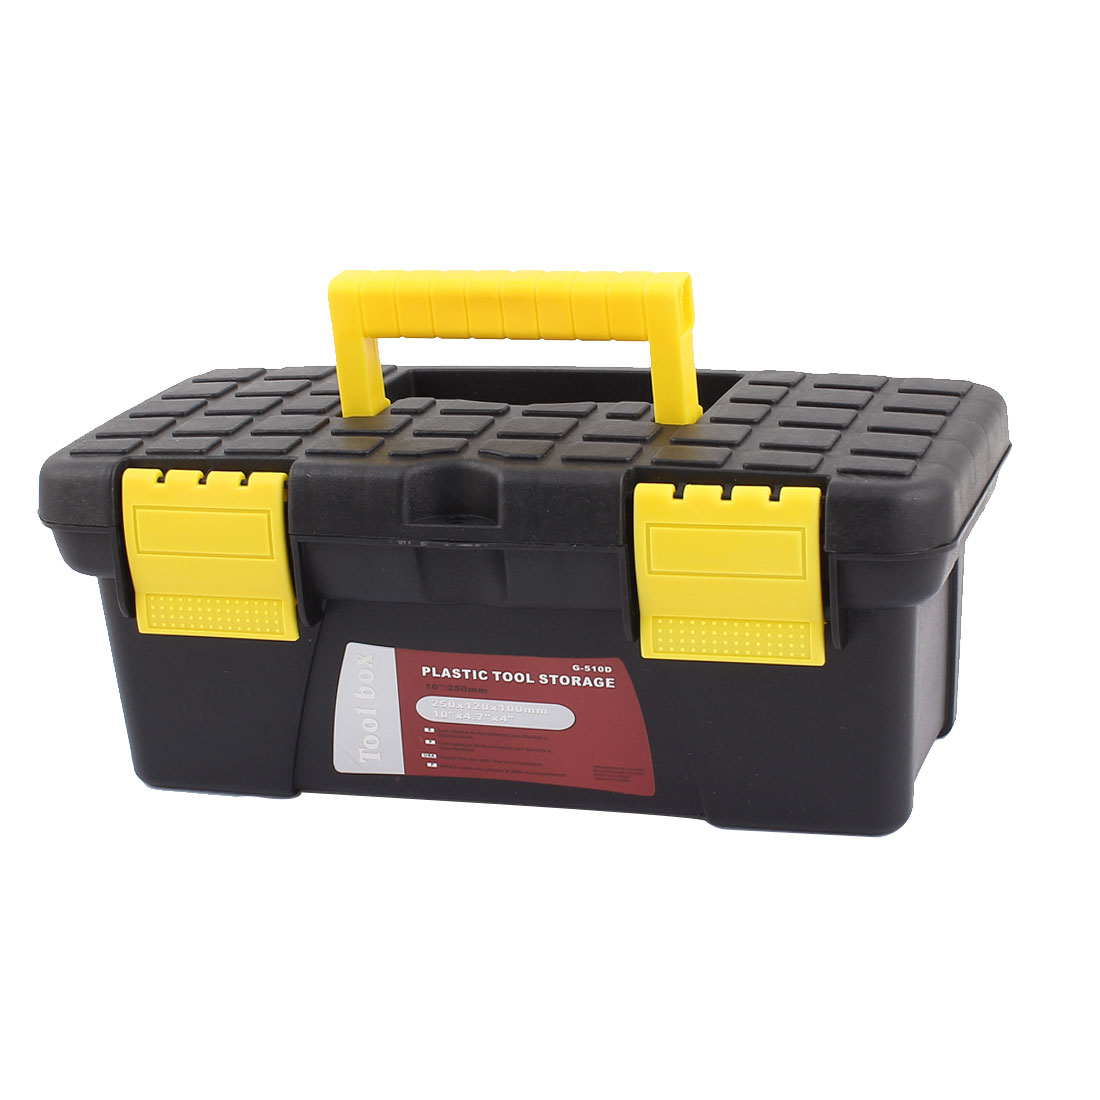 Electrician Engineer Plastic Dual Layers Hardware Tool Storage Box Case